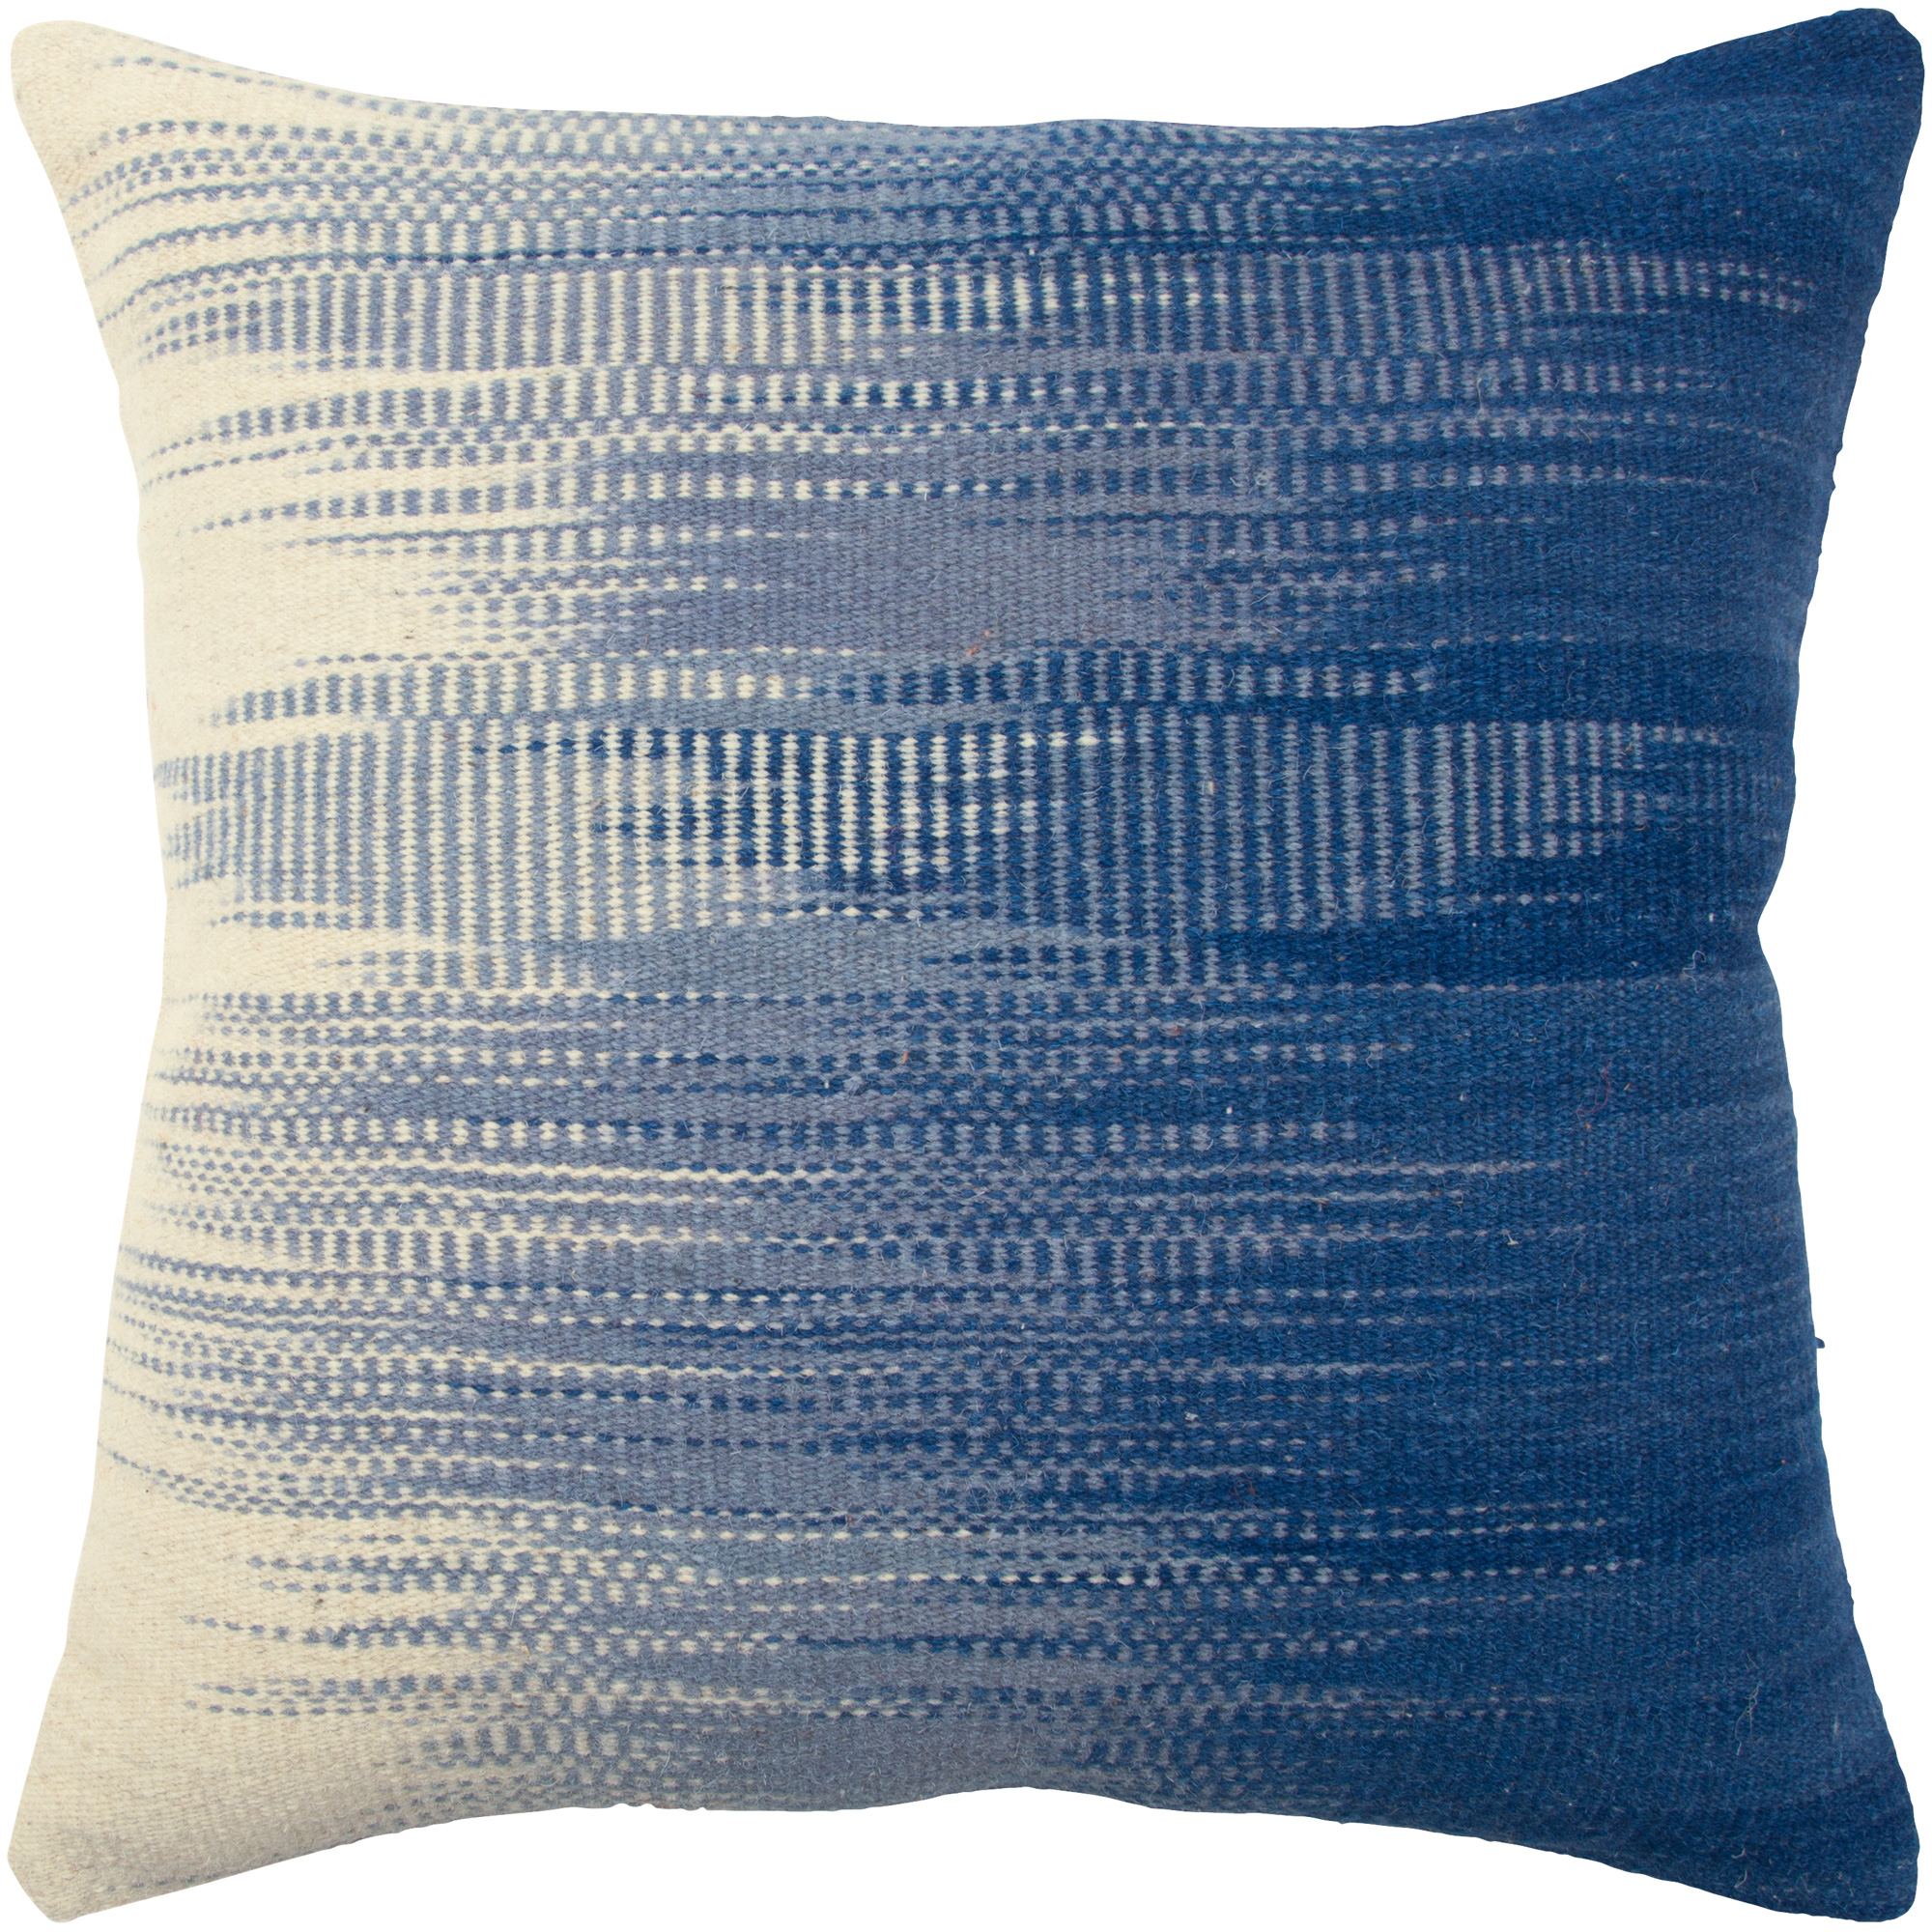 Rizzy Home | Aztec Blue and White Fade Down Pillow